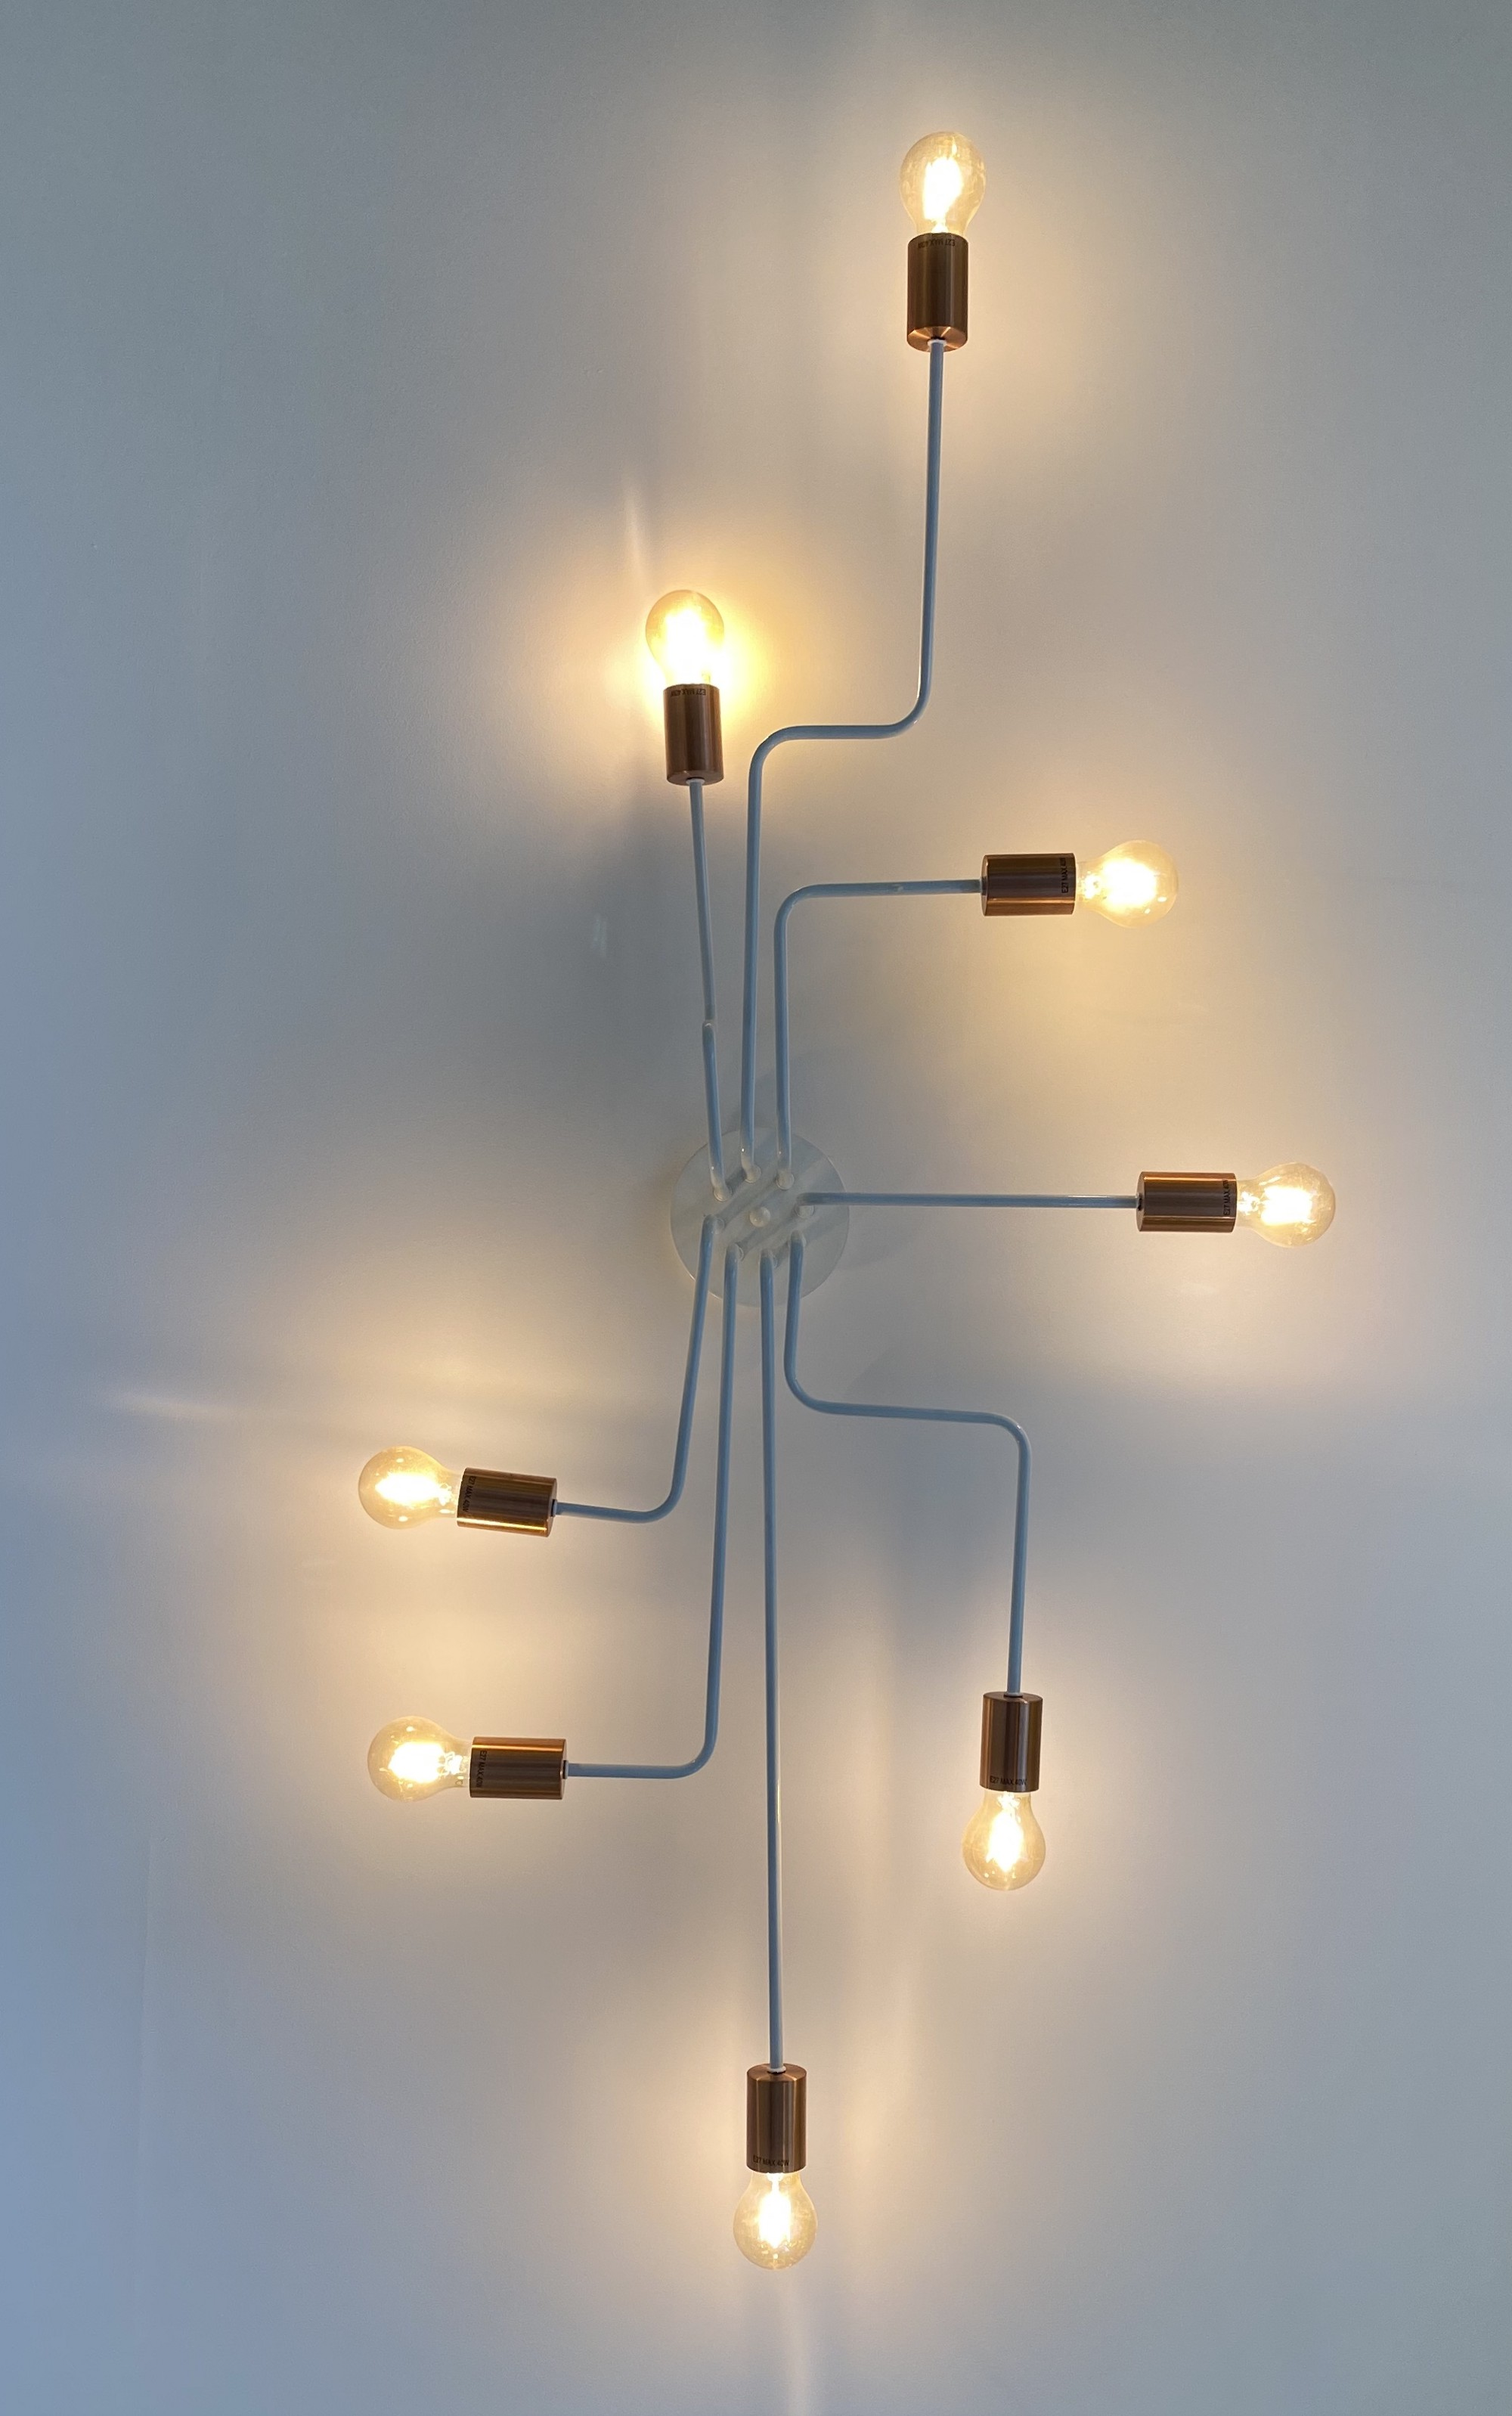 A number of light bulbs connected together